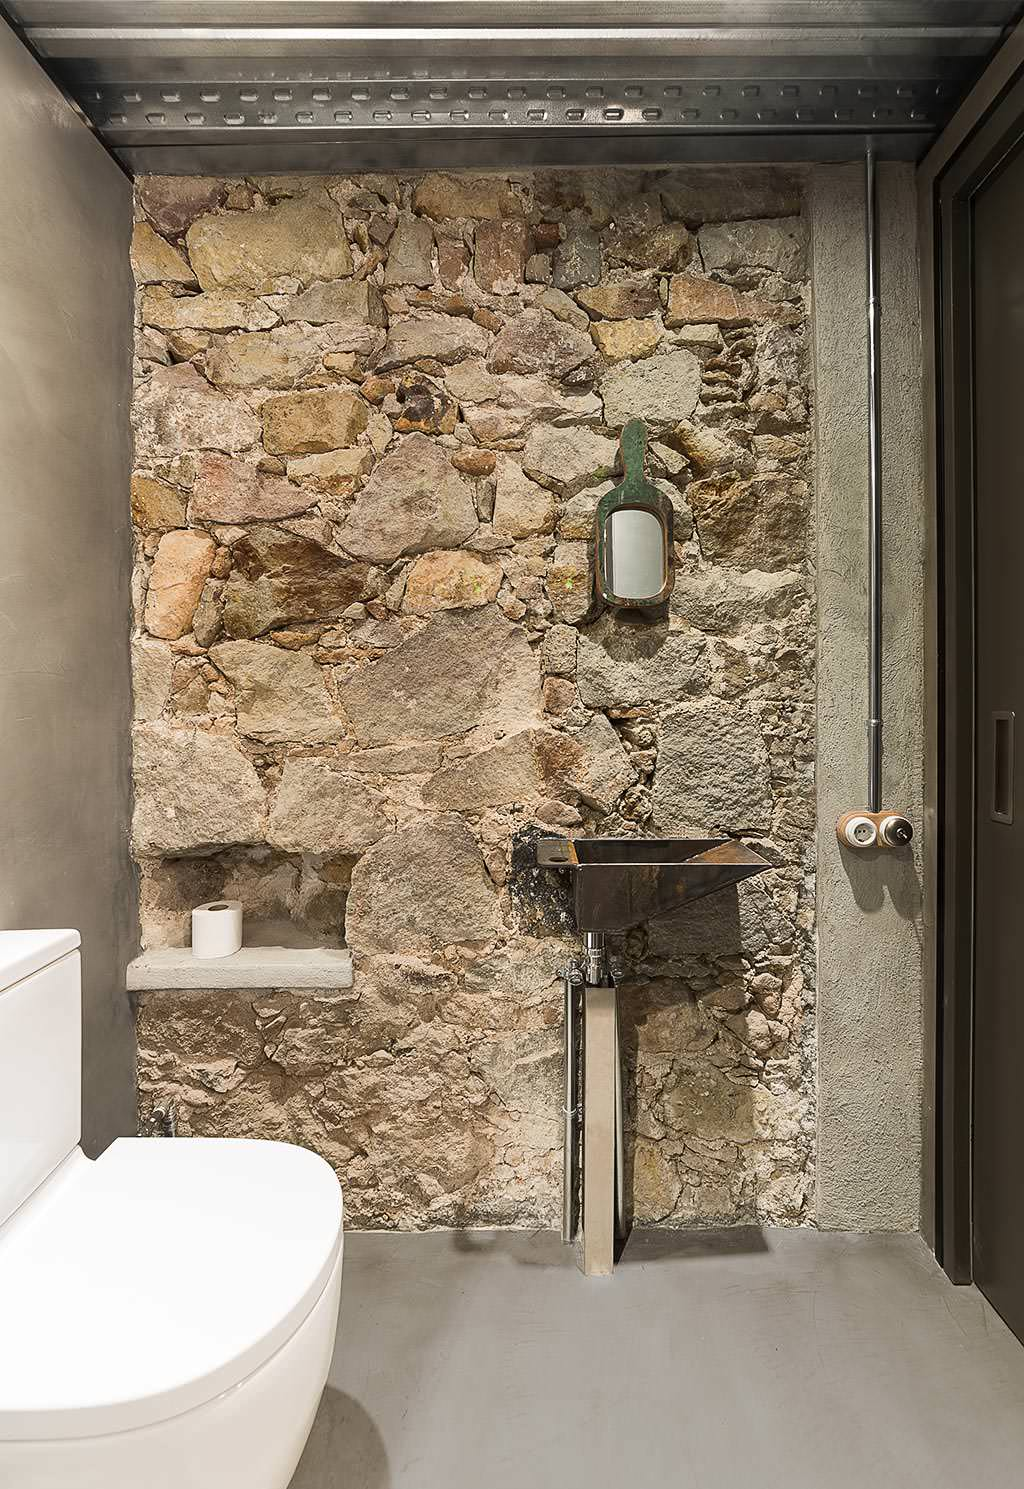 Industrial Style Bathroom Ideas Industrial Style Bathroom Ideas Industrial Style Bathroom Ideas to Glam up Your Home rustic industrial bathroom